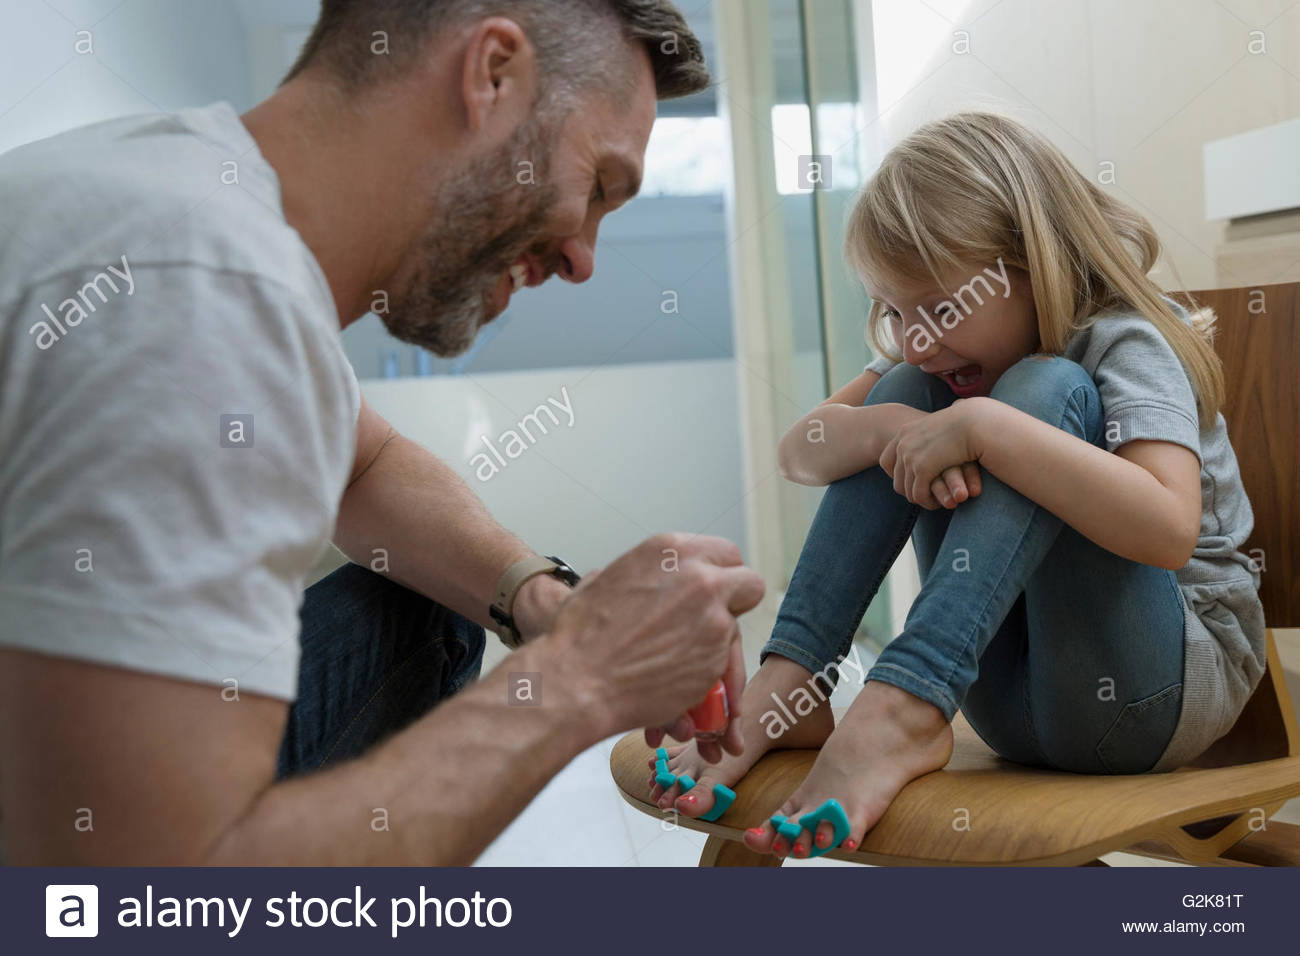 Father painting daughters toenails with nail polish - Stock Image